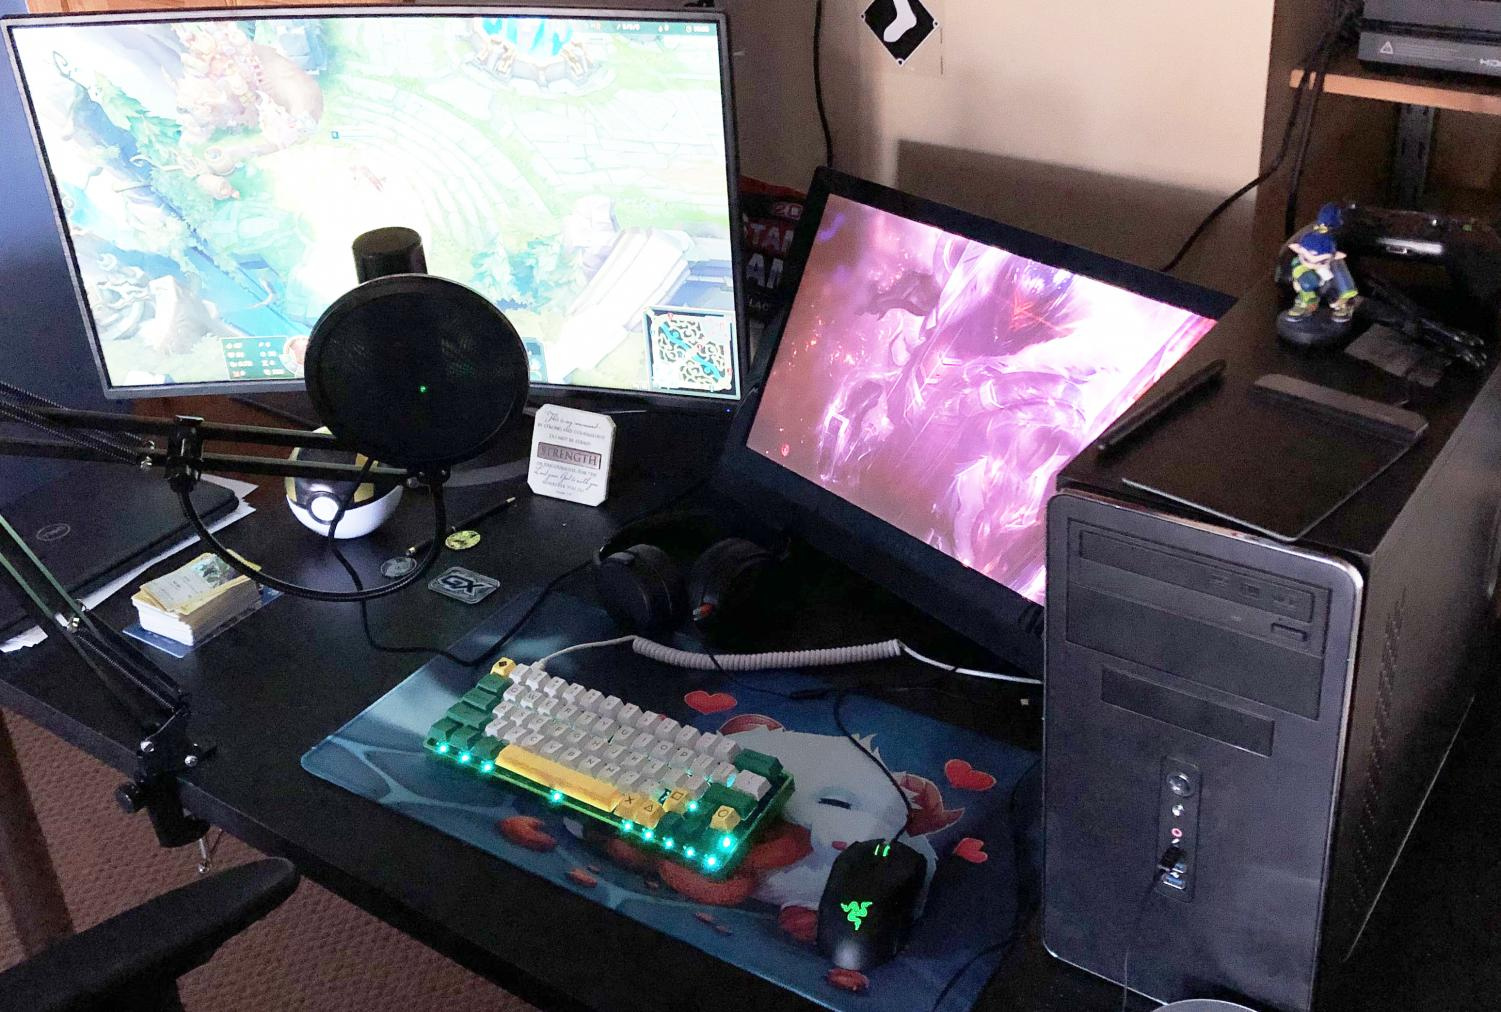 The powerful computer of E-Sports member Sean Fuller, who is playing the online multiplayer battle arena game League of Legends.